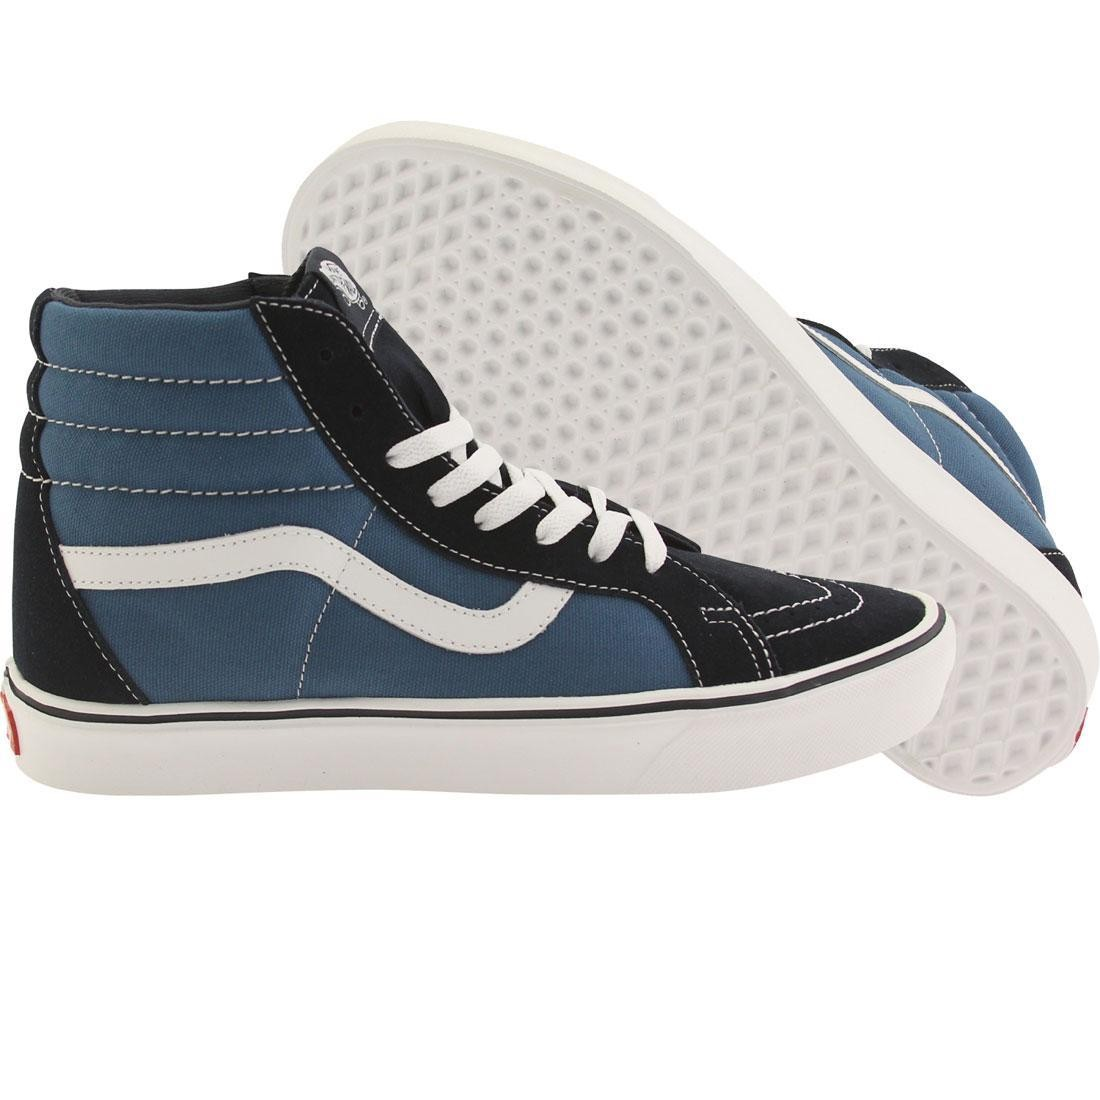 a42ca3280c Vans Men Sk8-Hi Lite + Suede Canvas navy white